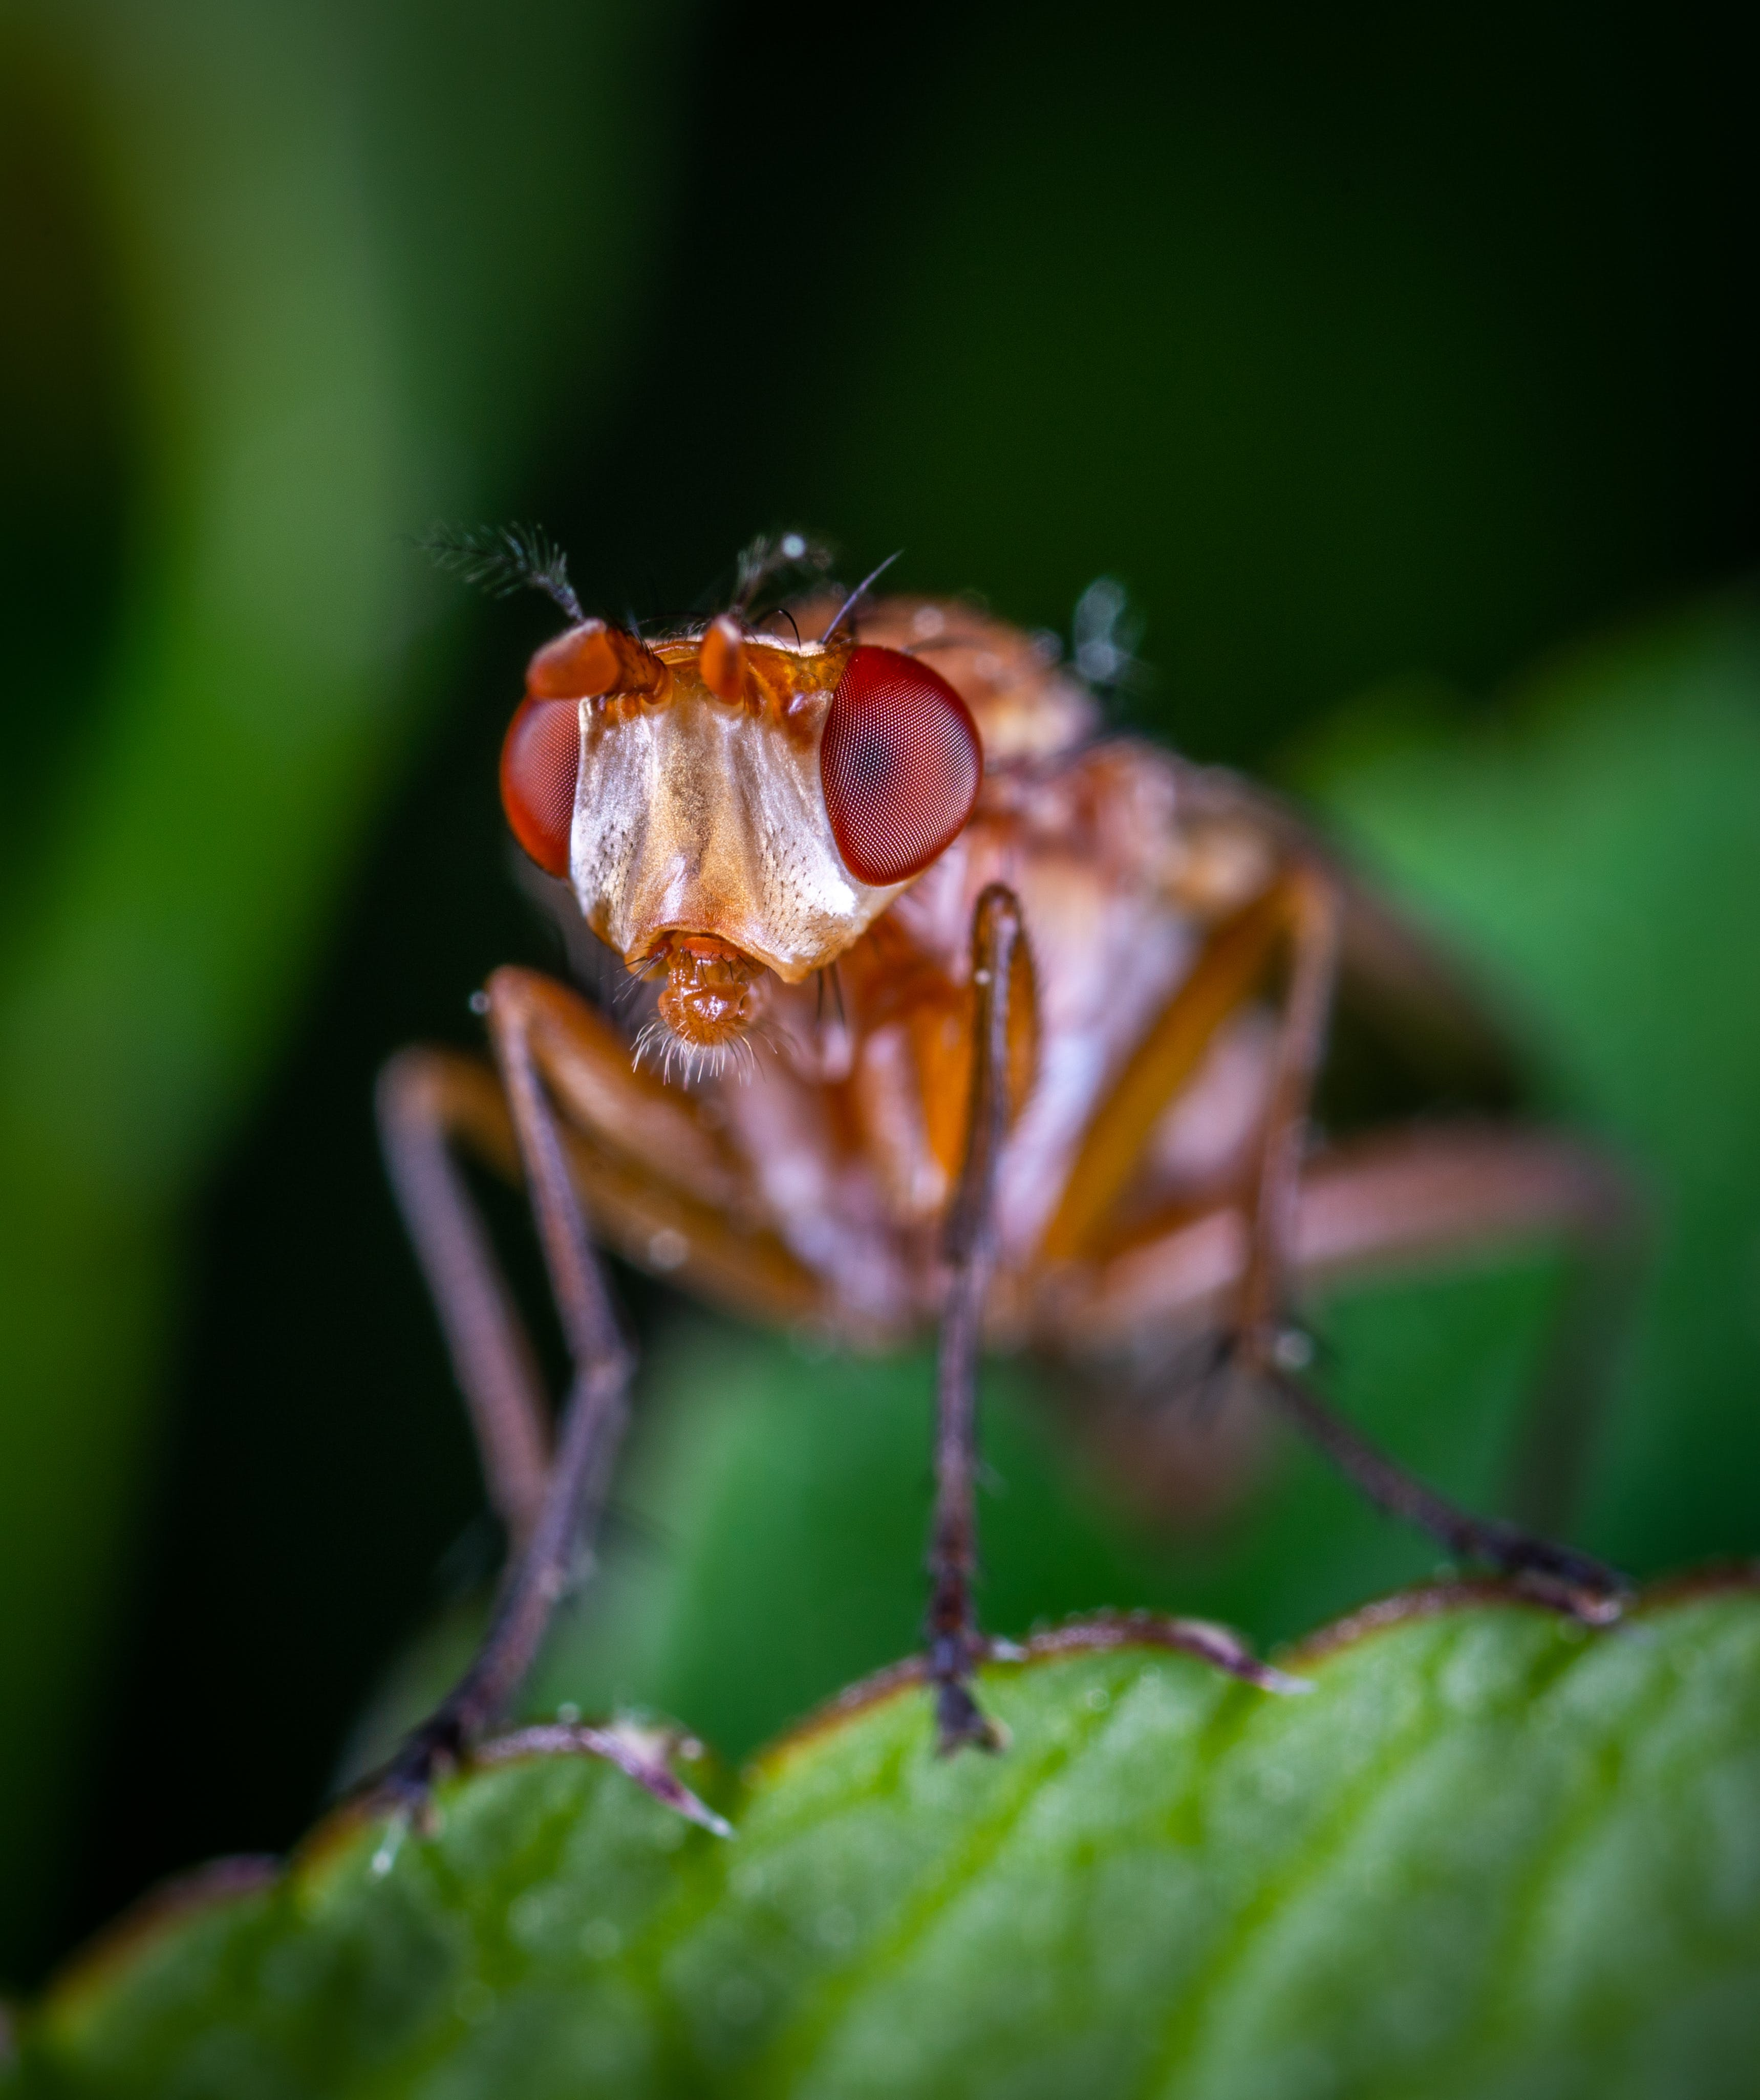 Macro Photography of Brown Fly on Green Leaf